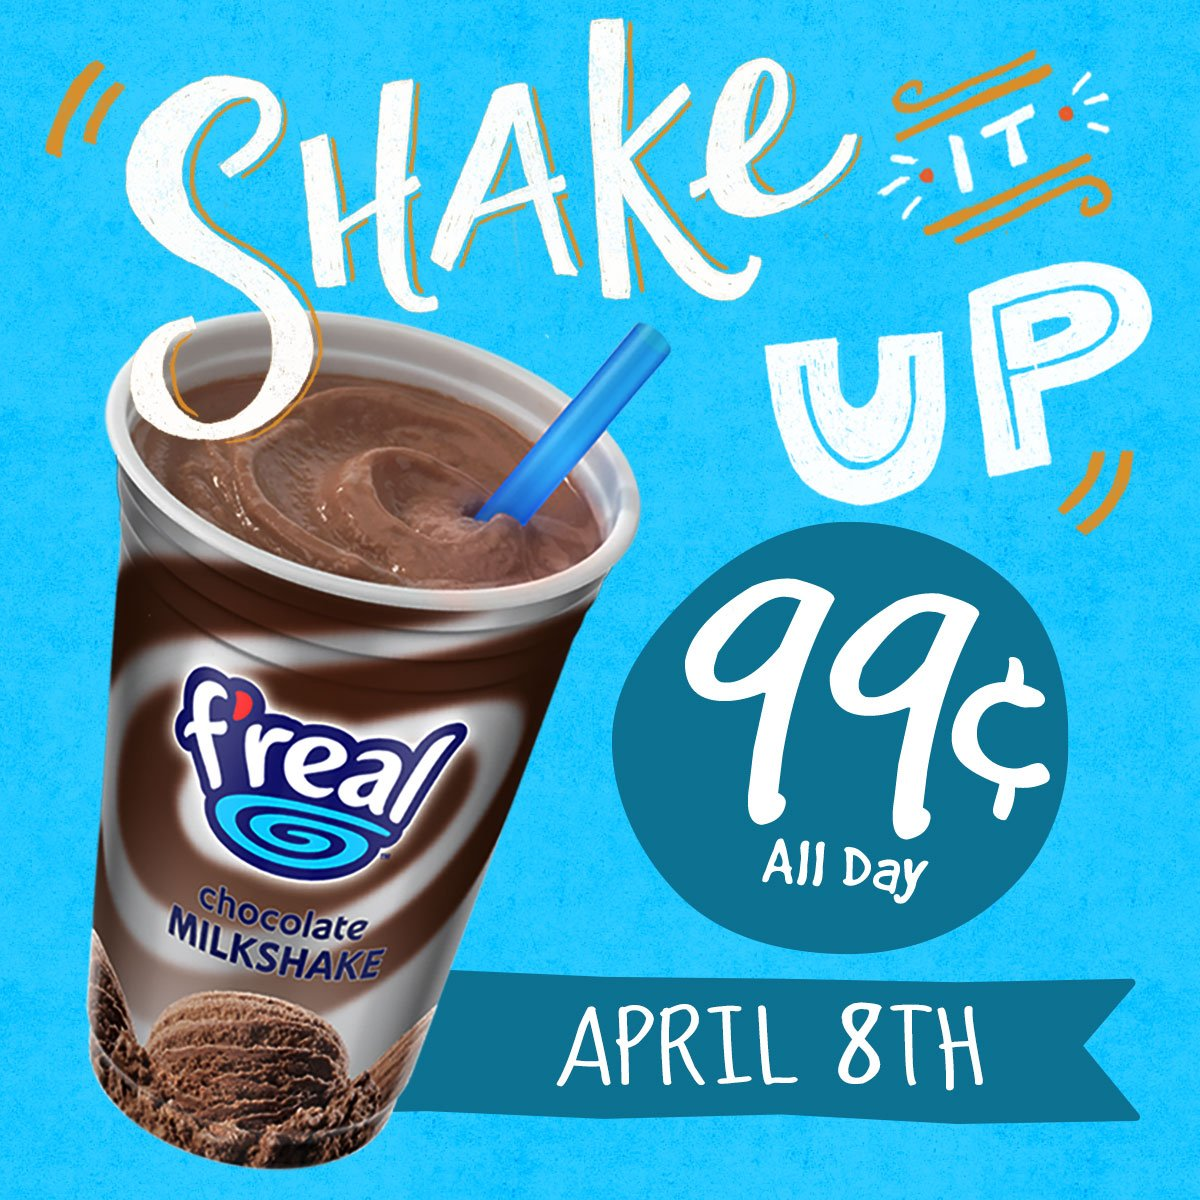 It's coming! $0.99 @therealfreal shakes all day April 8th. All flavors, all Sheetz stores, while supplies last. https://t.co/EFykhKm9qa